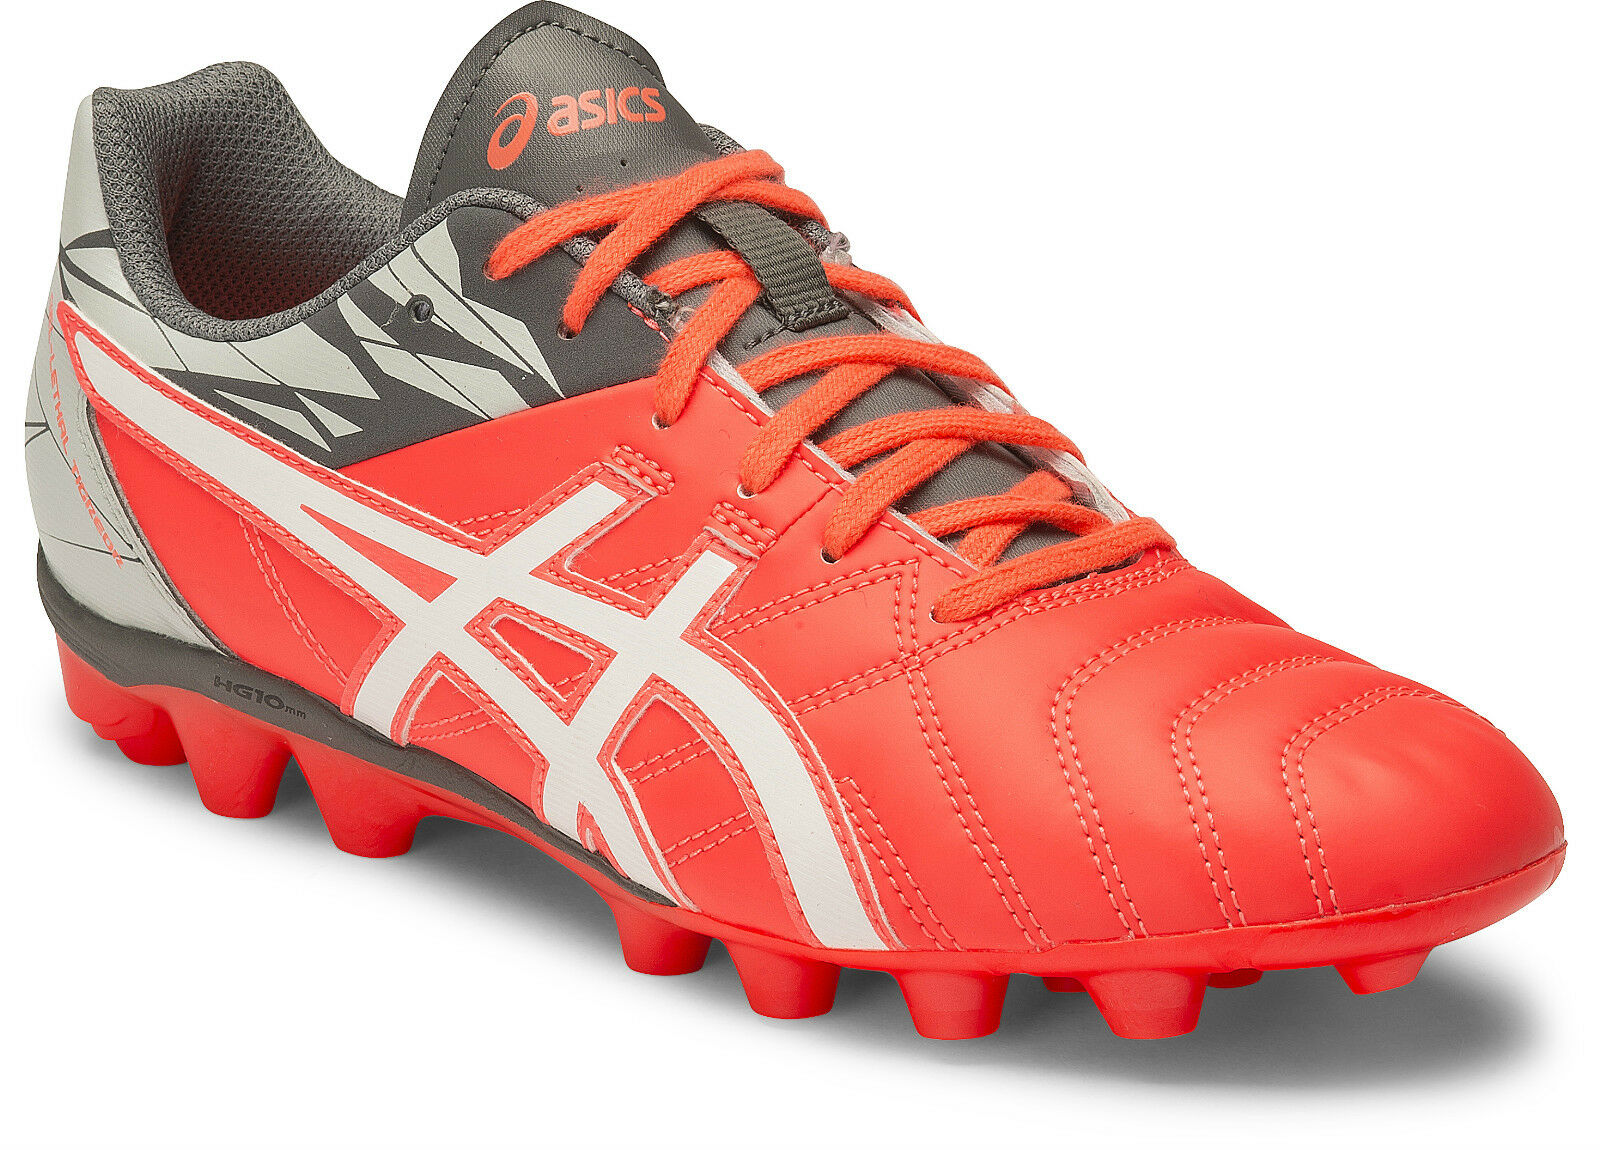 Asics Lethal Tigreor 9 IT GS Kids Football stivali 0601  Free Delivery Aus Wide